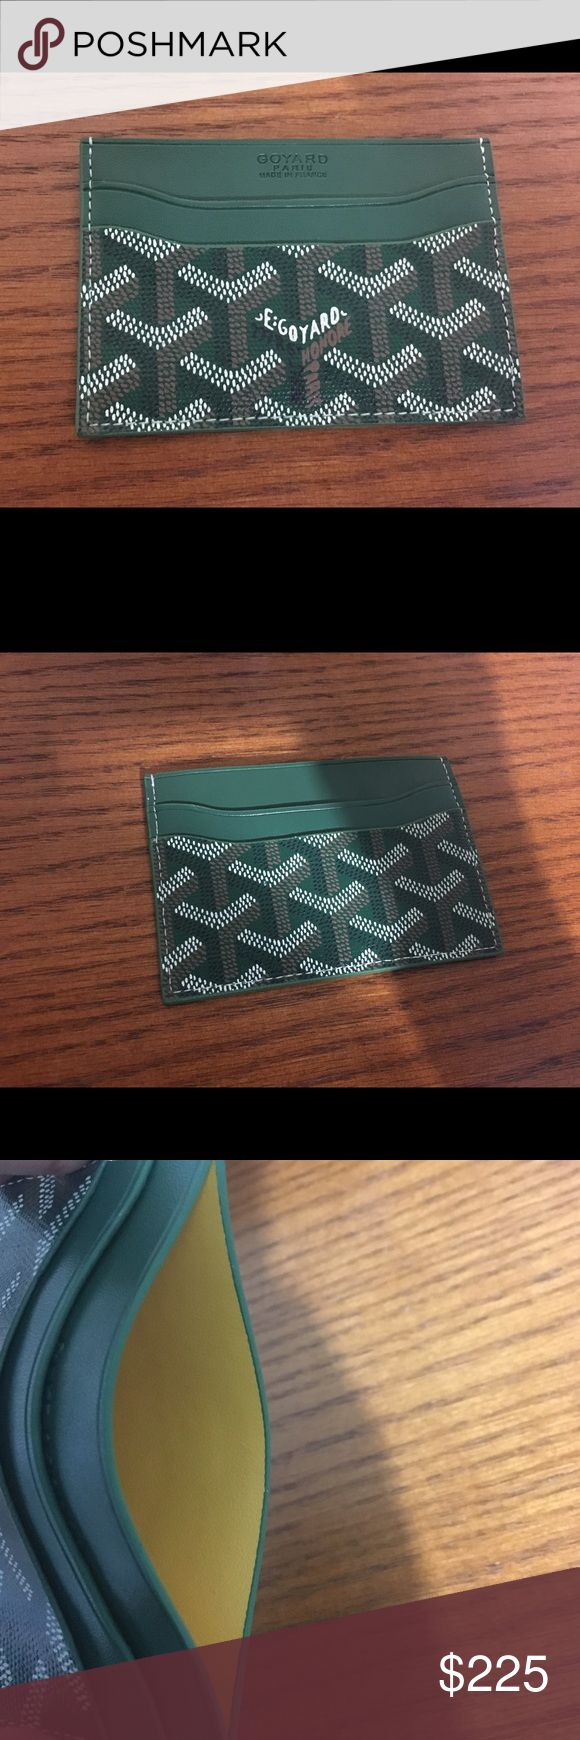 Goyard card holder Goyard card holder. Comes with box! USED but no noticeable signs of wear. Goyard Accessories